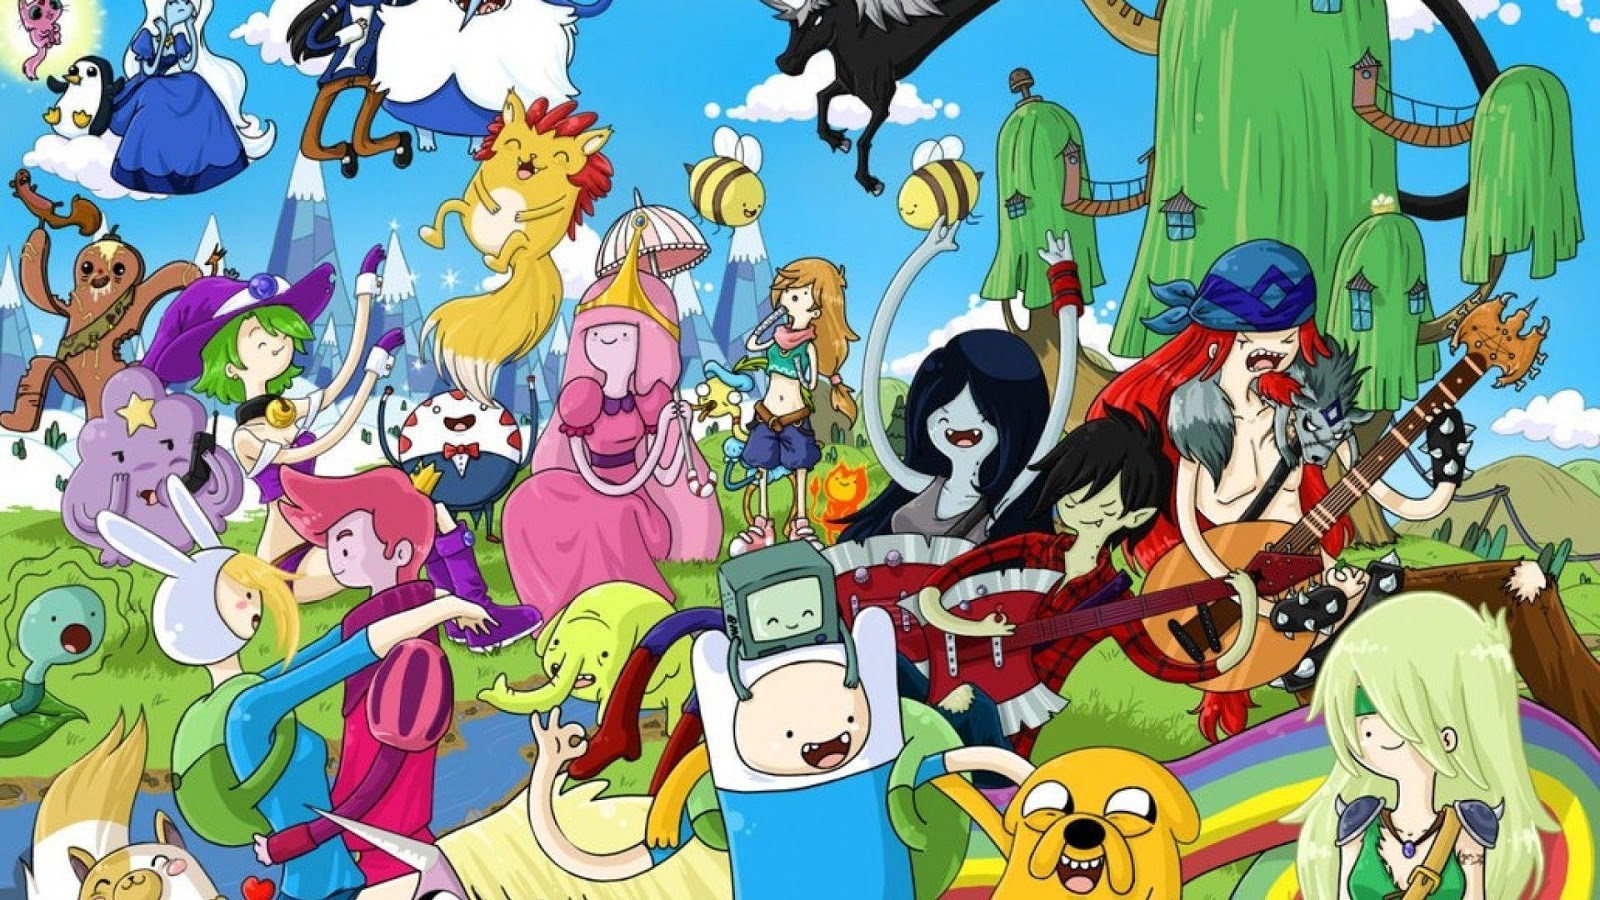 Adventure Time Screensaver Wallpapers Image 11 Cool Hd